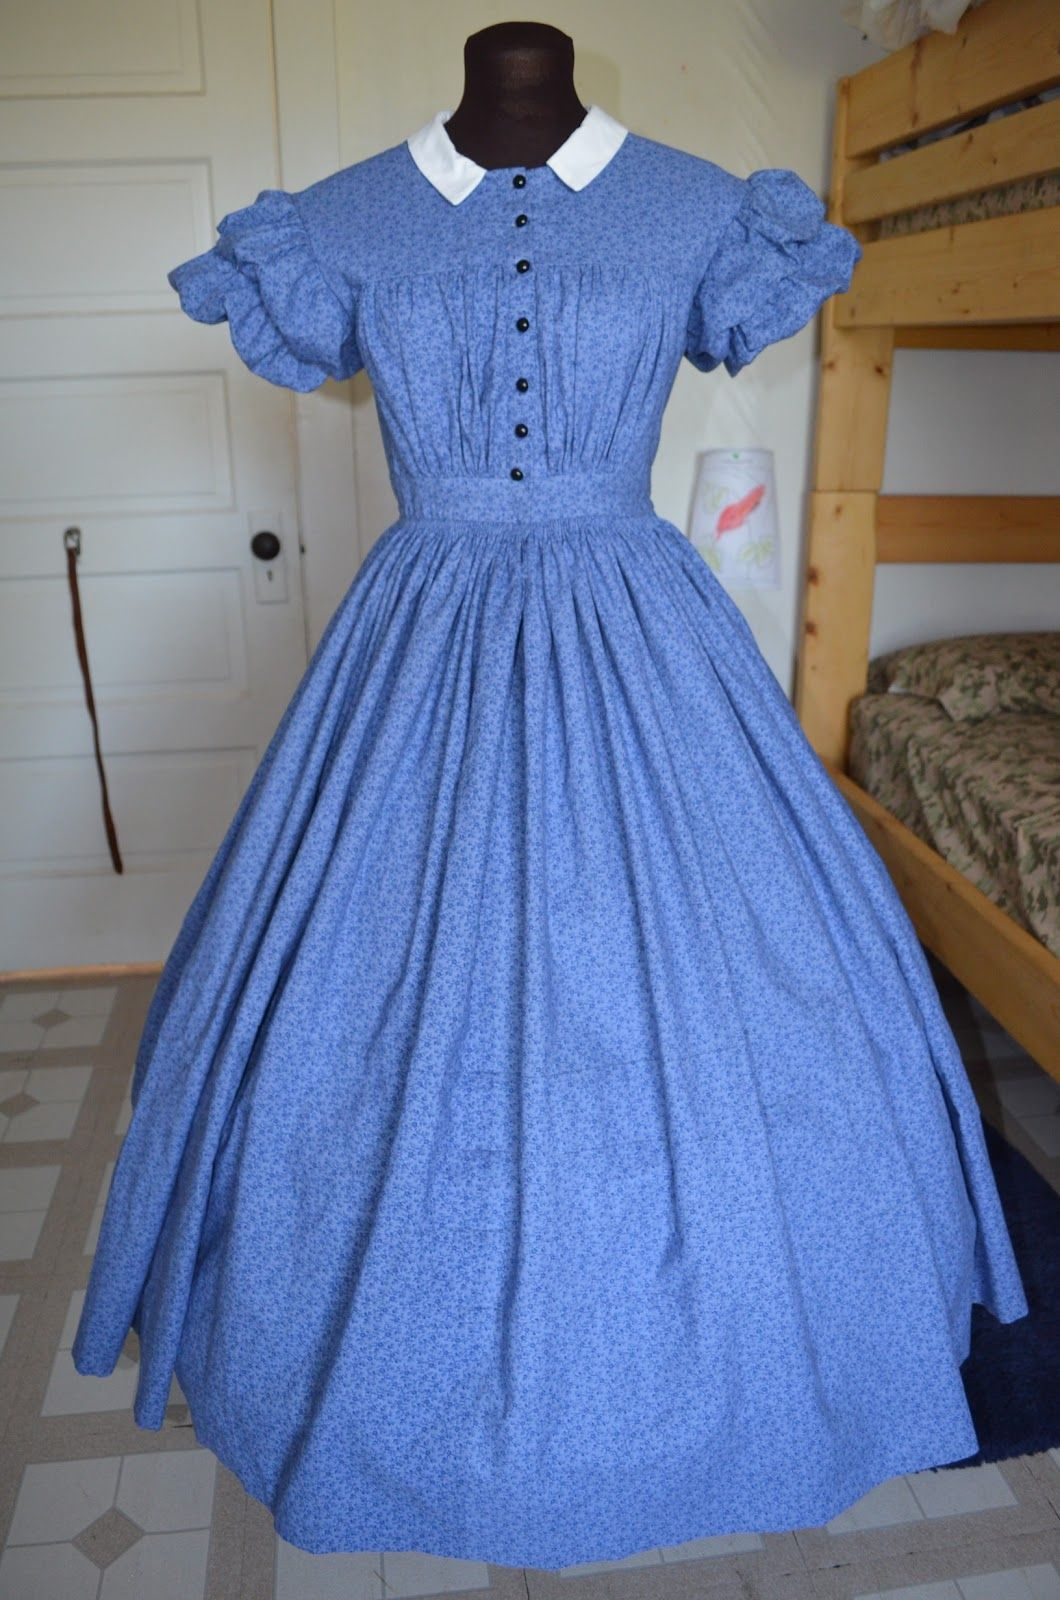 Stitches Of The Past: Search results for Civil war | 1860s clothing ...